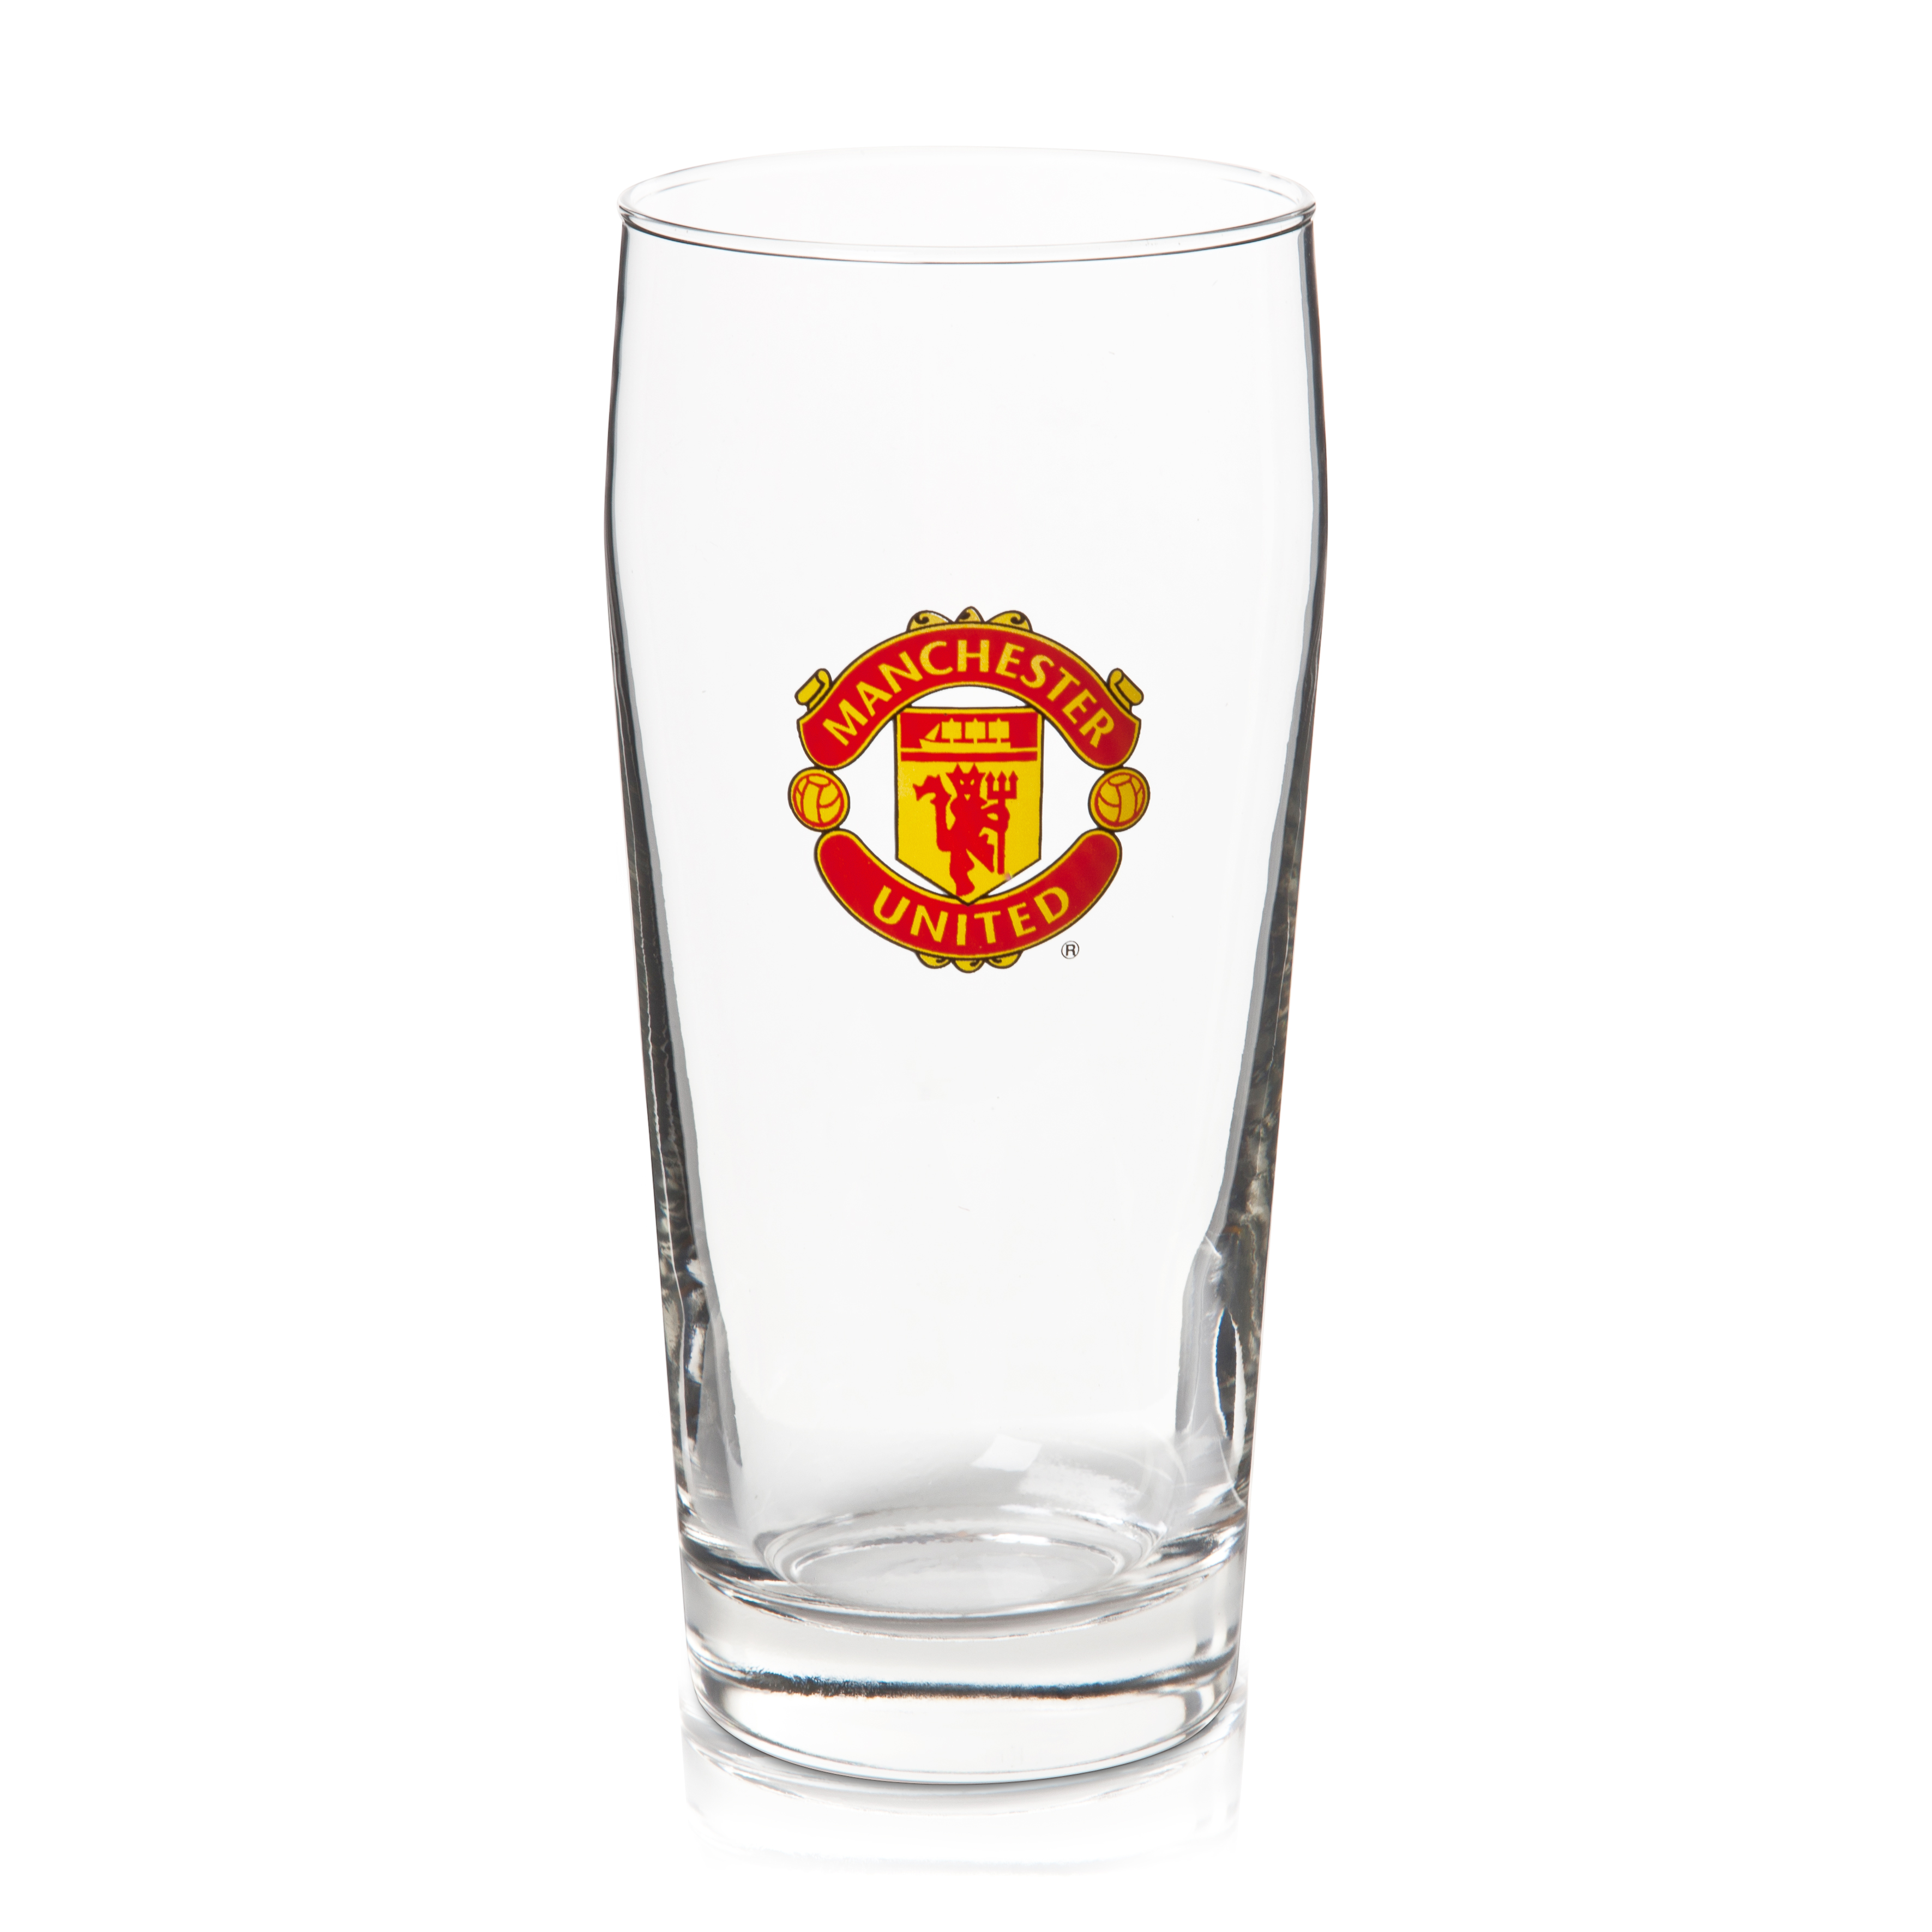 Manchester United Tulip Pint Glass